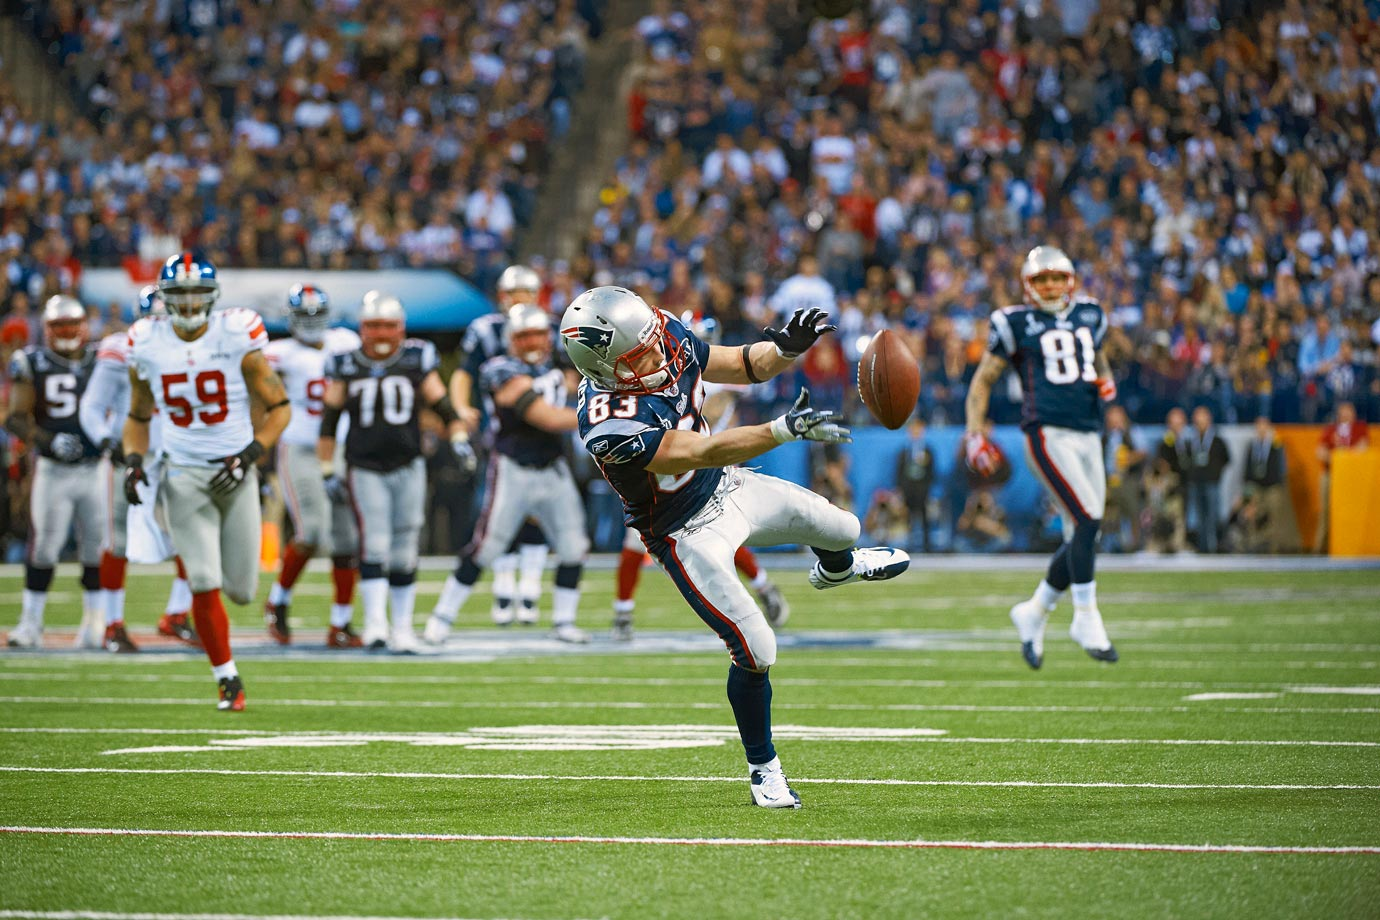 On second-and-11 with four minutes remaining in the fourth quarter of Super Bowl XLVI, Patriots wide receiver Wes Welker found some space on a go route but couldn't haul in the pass from Tom Brady. Although Brady's throw was high and to Welker's outside shoulder, the pass hit Welker in the hands, leading to a debate weeks after the game over who was more at fault, Brady or Welker. The New York Giants took advantage of the miscue to come back and defeat the Patriots 21-17.